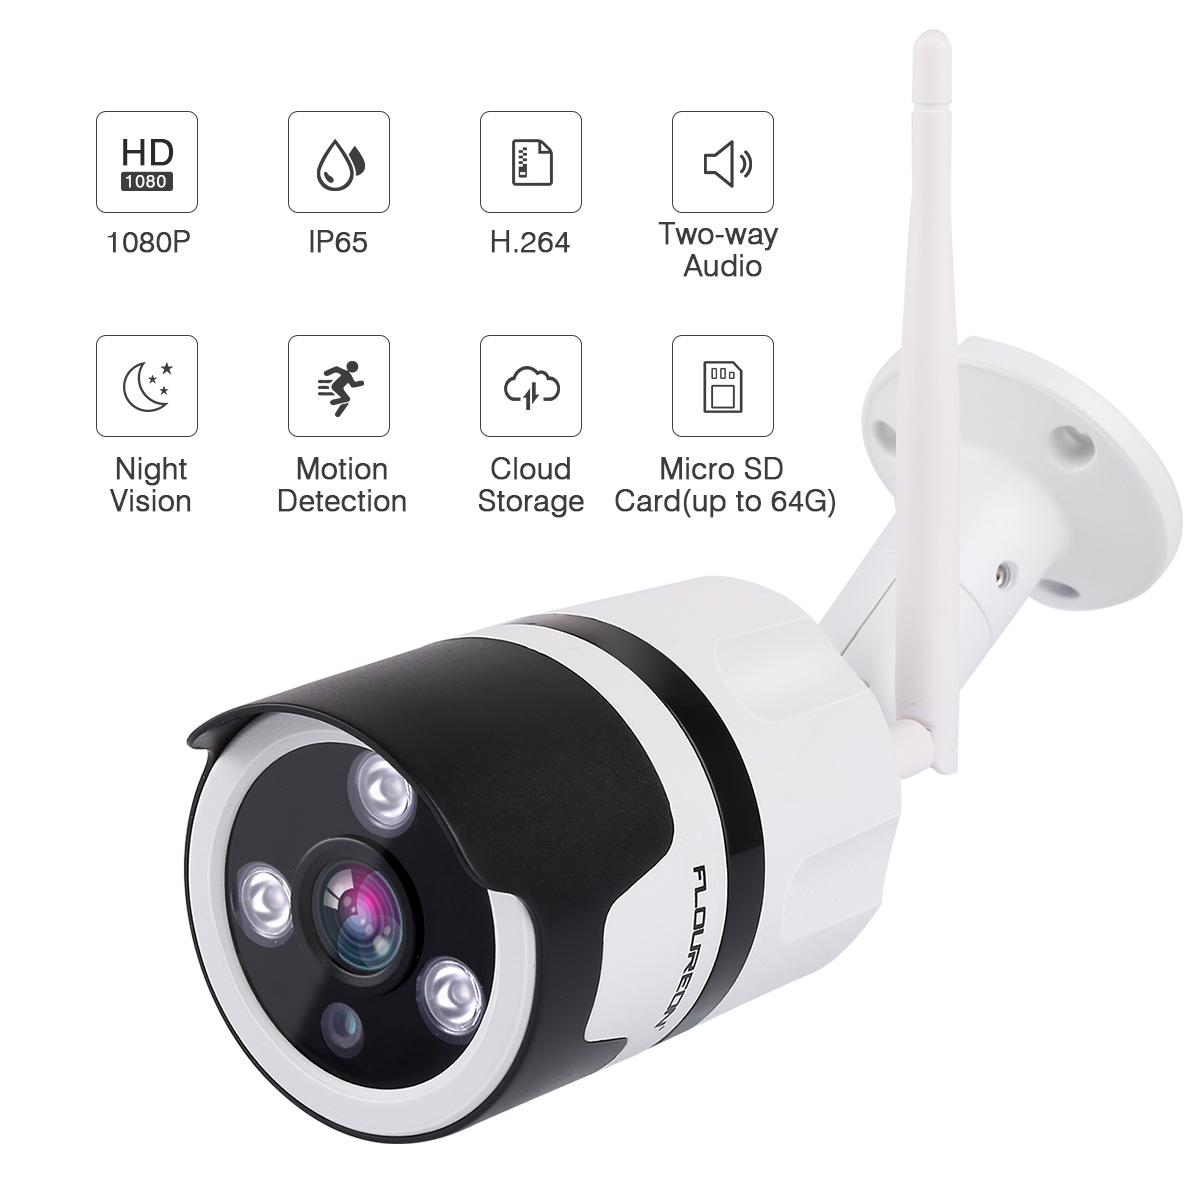 FLOUREON 1080P Wifi Wireleess Bullet IP Camera with Two-way Audio, IR Night Vision, Motion Detection, Remote View Via Smartphone / Tablet / PC, IP65 Waterproof, Up to 64GB Micro SD Card